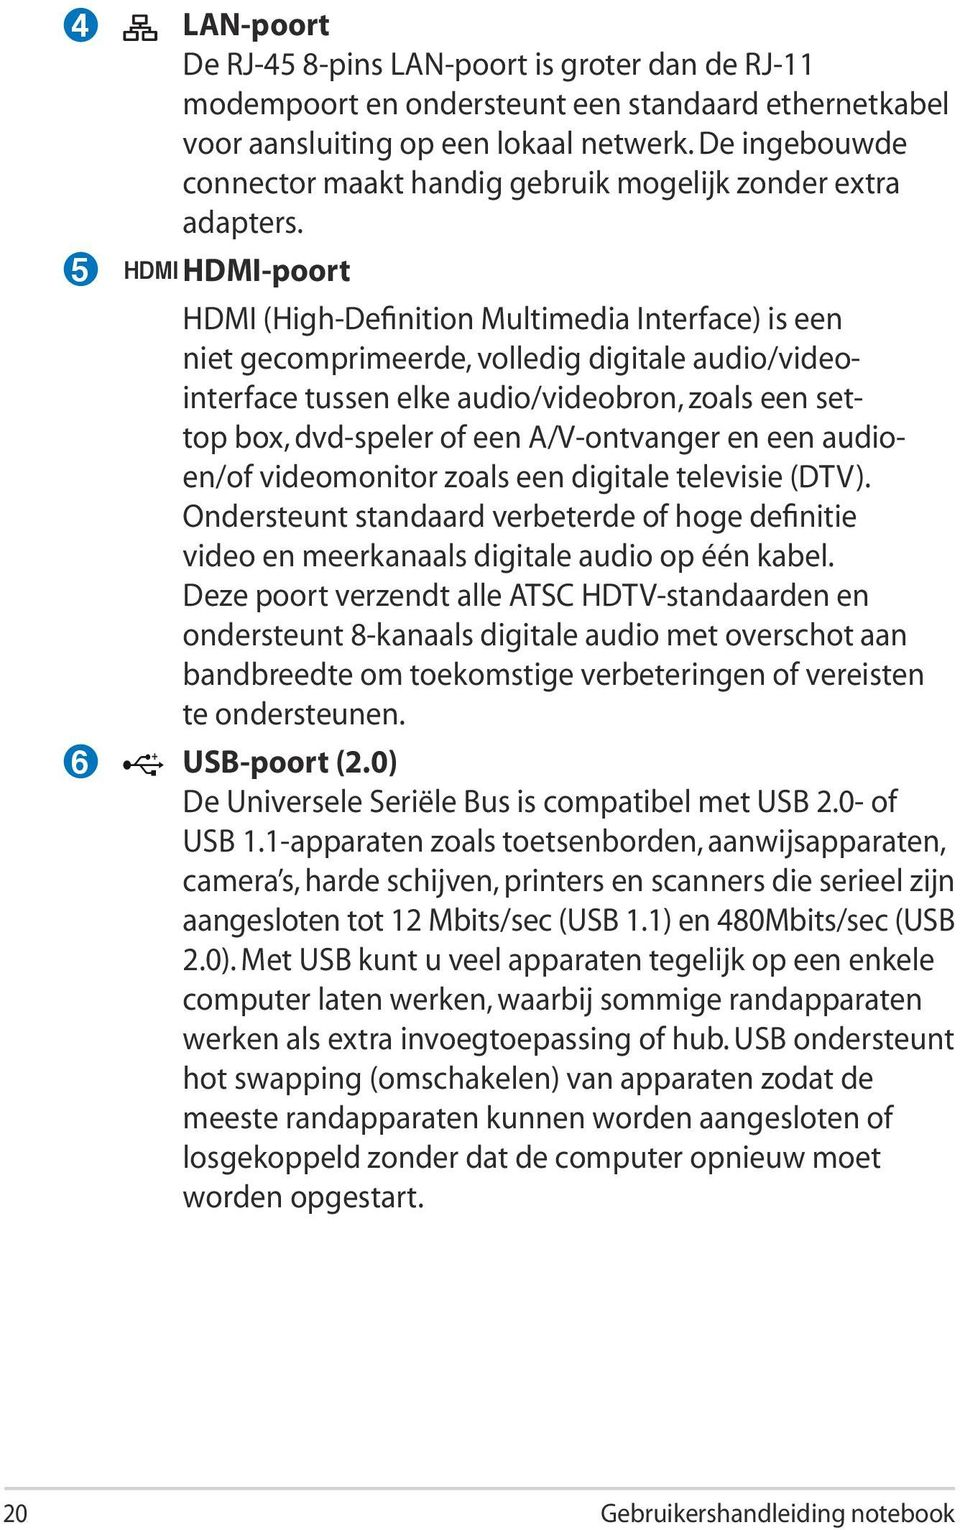 HDMI HDMI-poort HDMI (High-Definition Multimedia Interface) is een niet gecomprimeerde, volledig digitale audio/videointerface tussen elke audio/videobron, zoals een settop box, dvd-speler of een